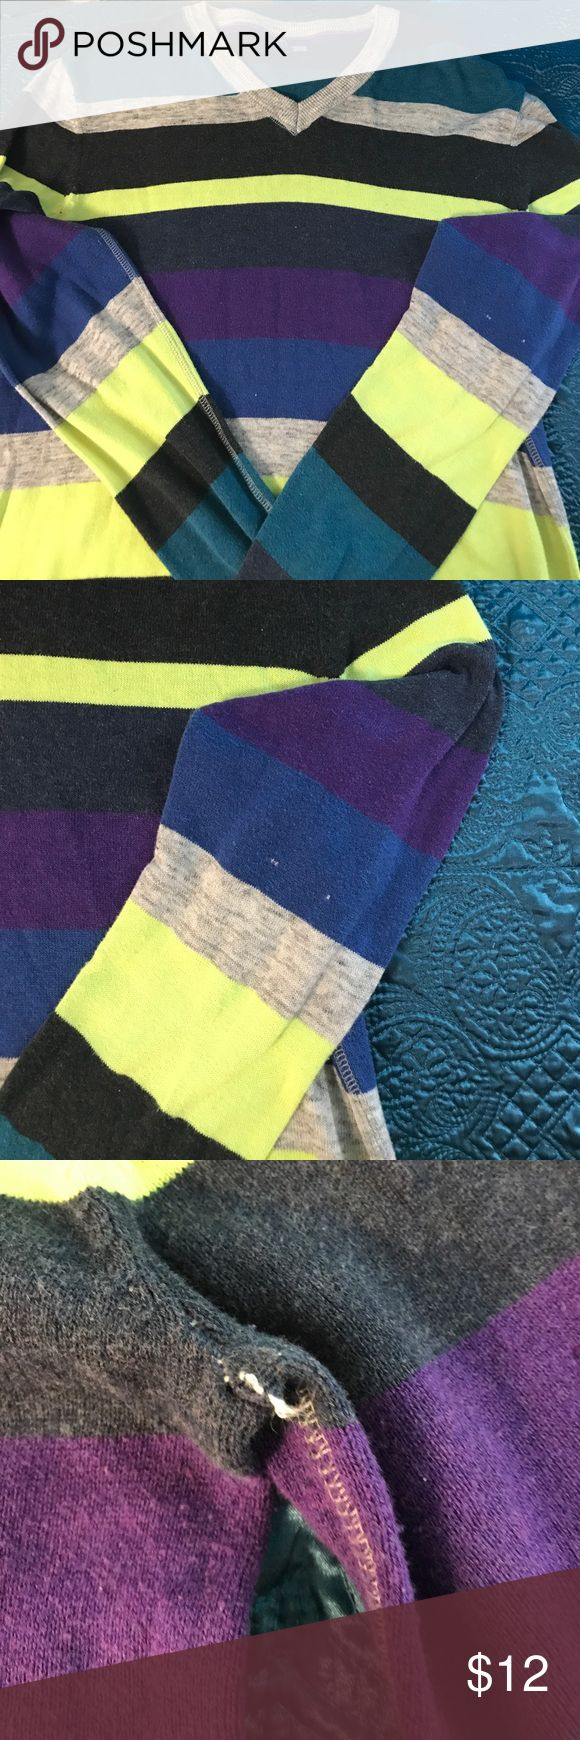 Used multi-colored men's sweater by H & M Used men's multi-colored V neck sweater size medium. There is a little snag on left sleeve as pictured and under the arm, which is pictured as well. The sweater is grey, teal, purple, lime green, and navy blue. H&M Sweaters V-Necks